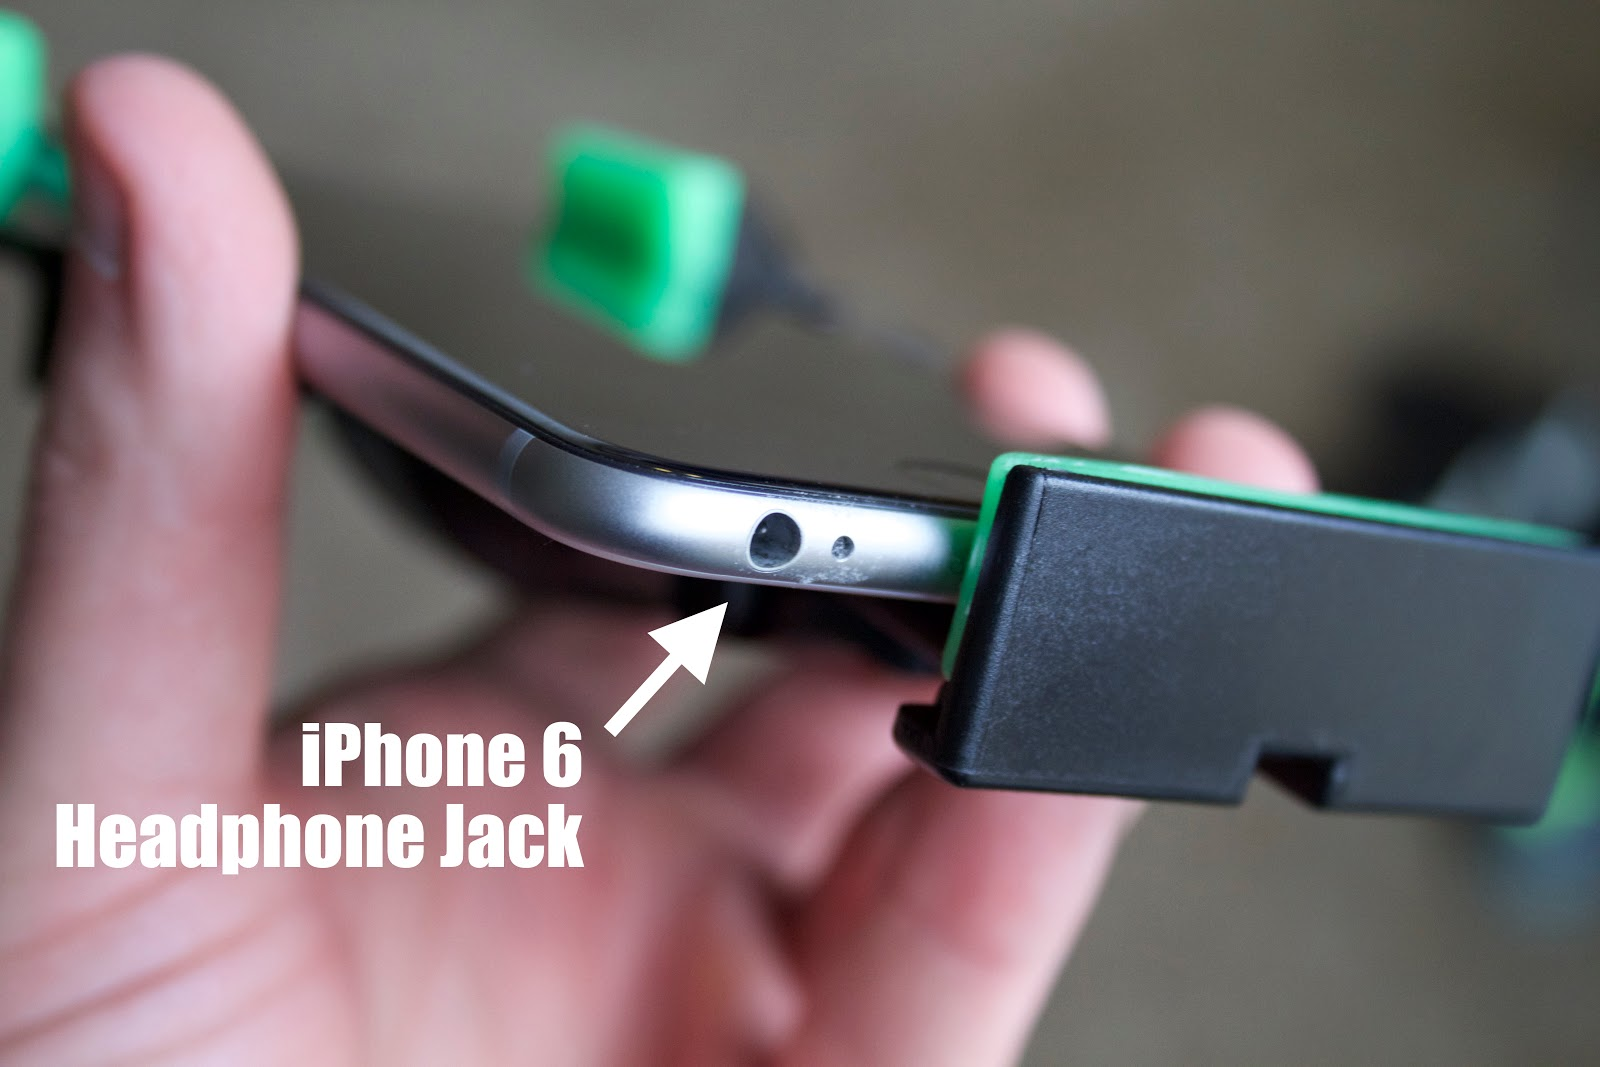 iphone headphone jack